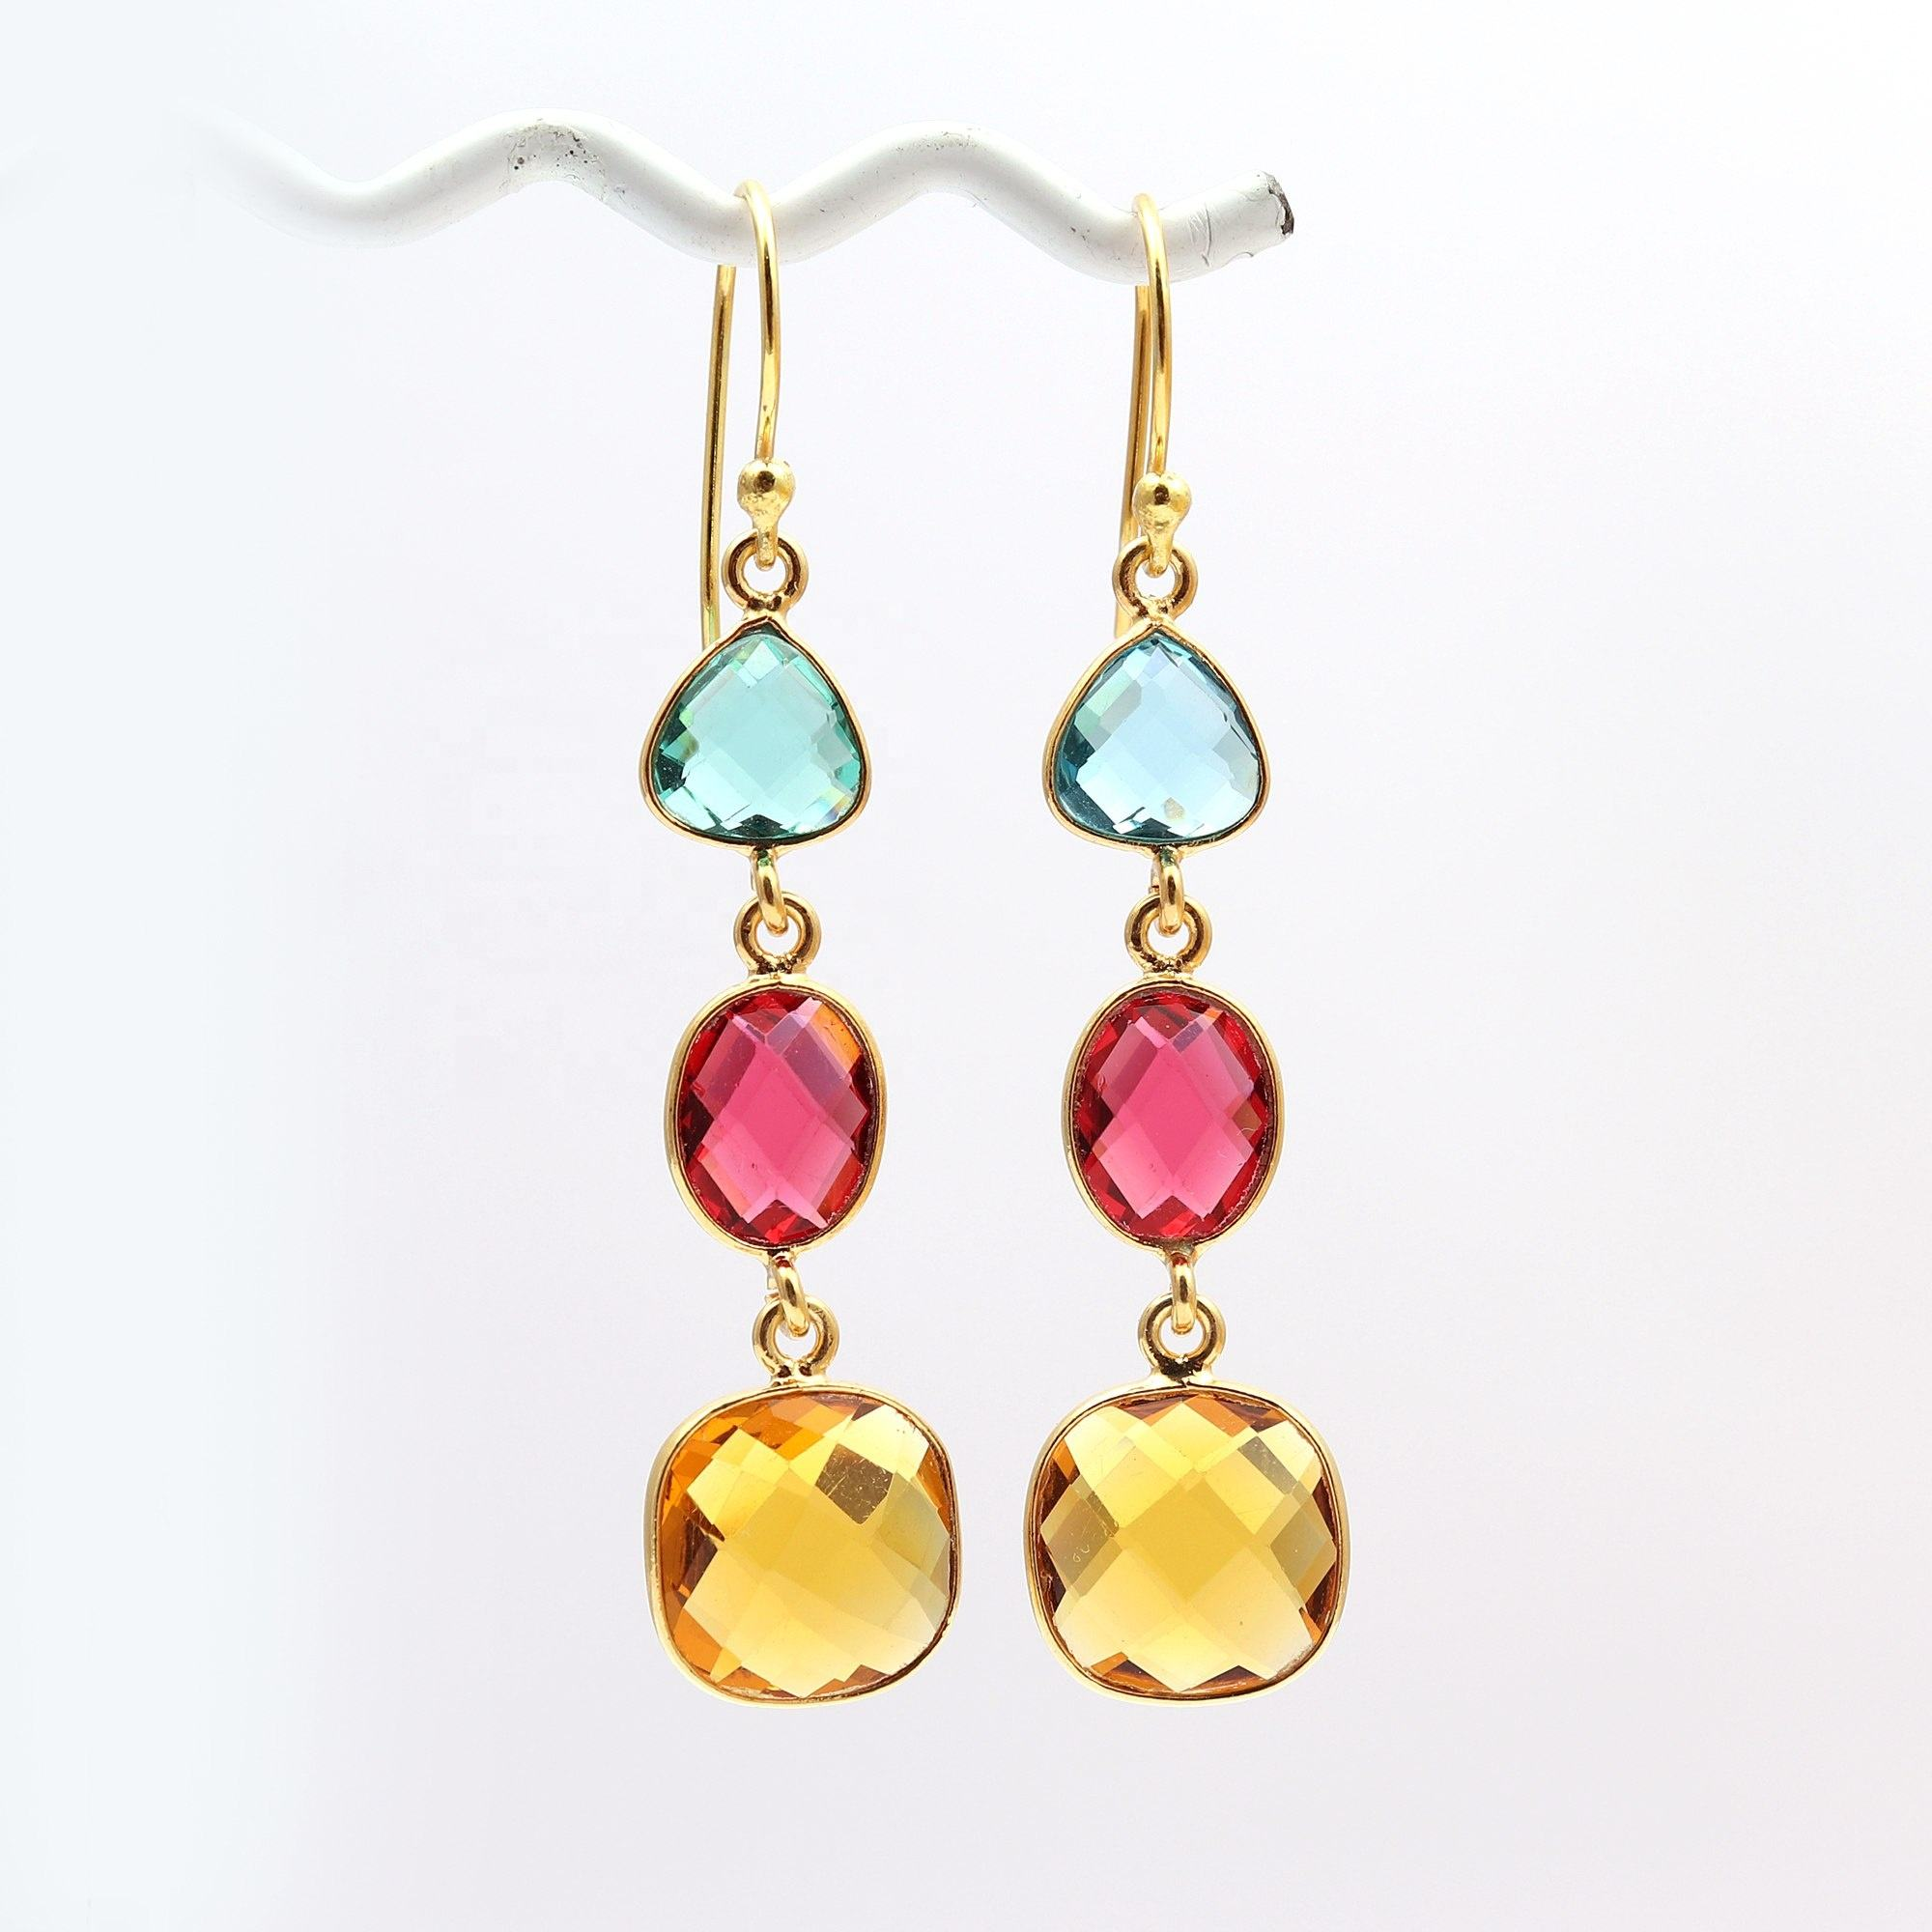 Apatite, Citrine Gemstone Hook Earring Gold Plated Trillion/Oval/Cushion Shape Earrings jewelry